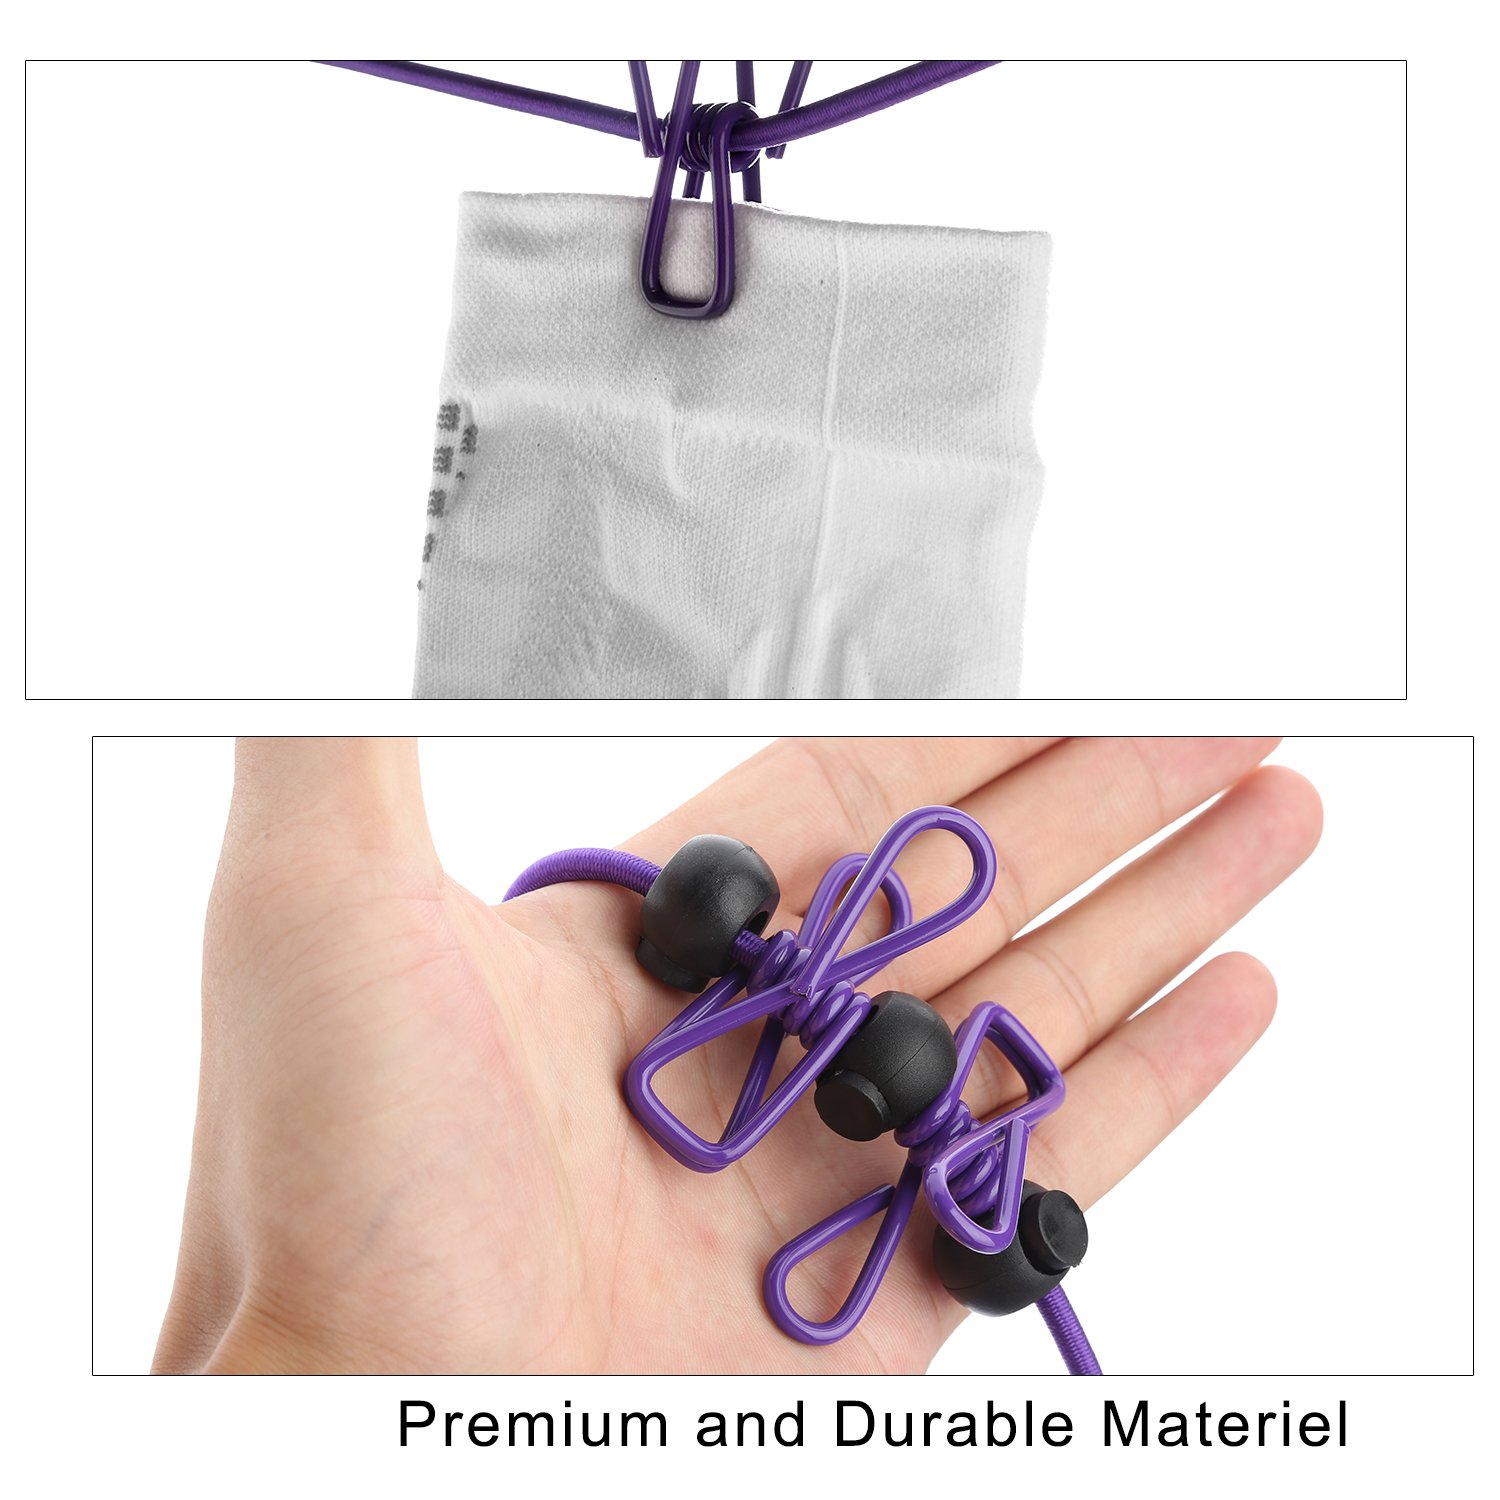 WAAO Portable Travel Clothesline Adjustable Elastic Travel Camping Windproof Clothesline with 12pcs Clips for Outdoor and Indoor Use (purple)